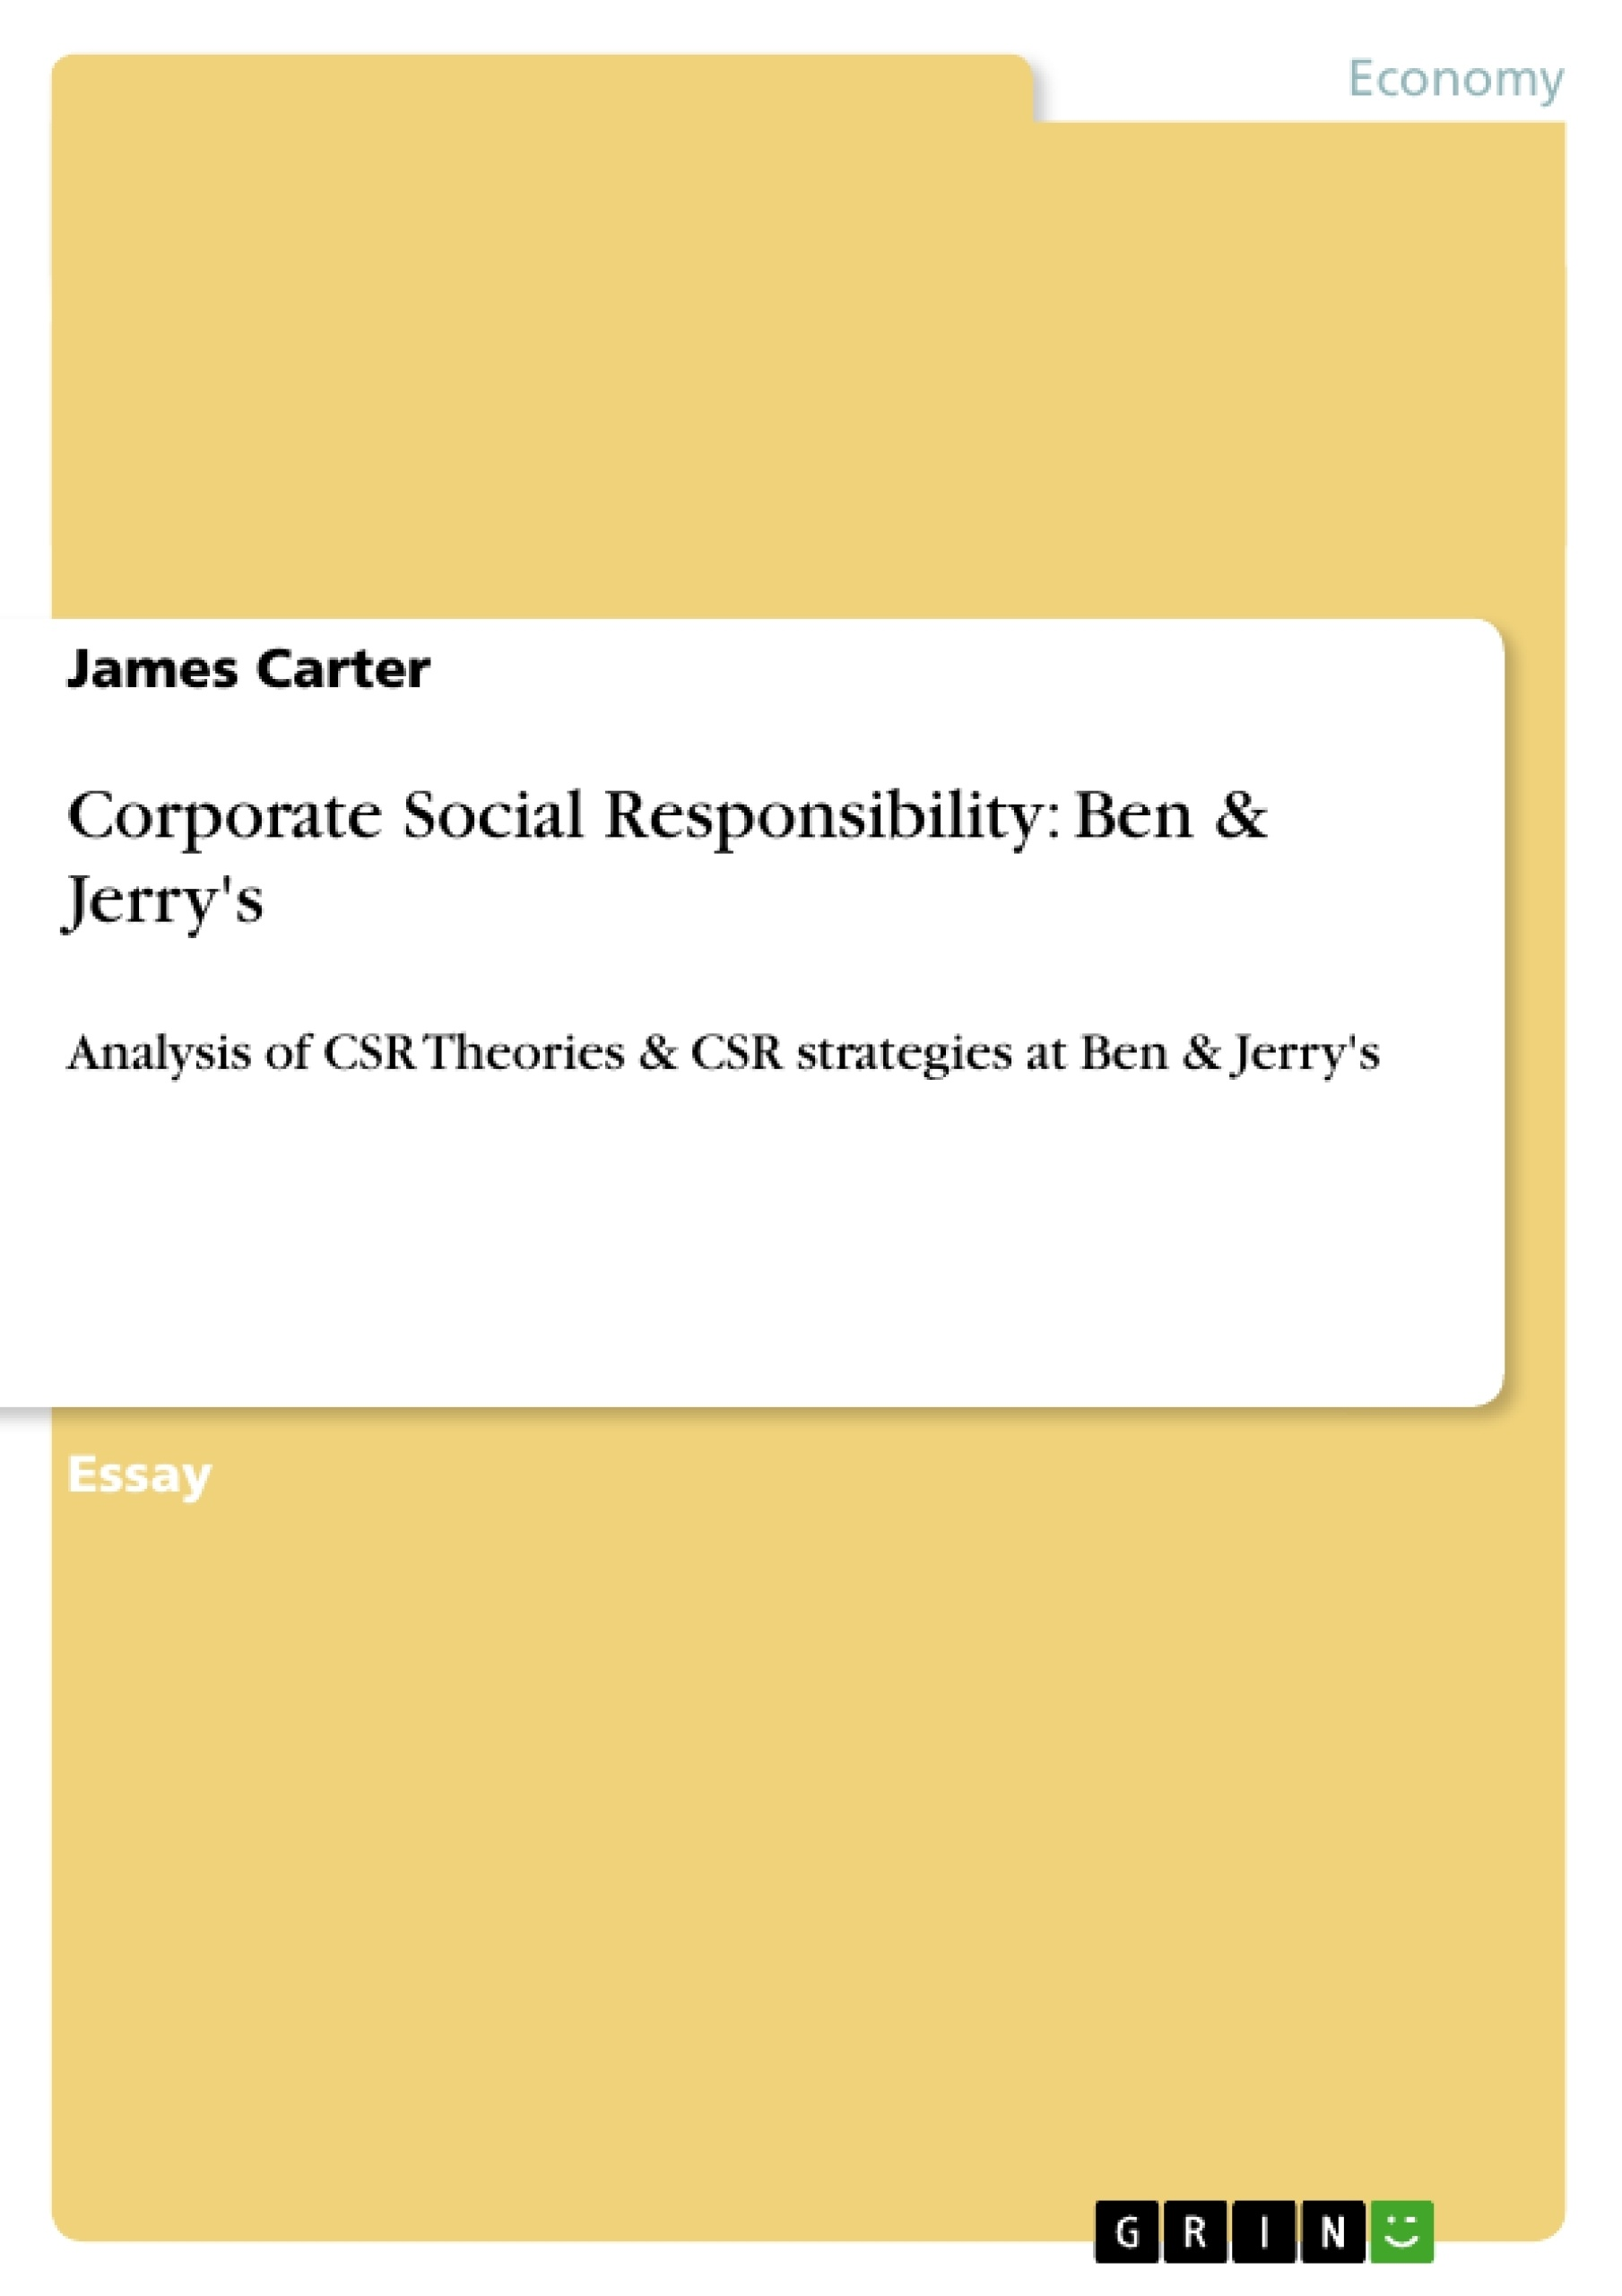 corporate social responsibility ben jerry s publish your corporate social responsibility ben jerry s publish your master s thesis bachelor s thesis essay or term paper